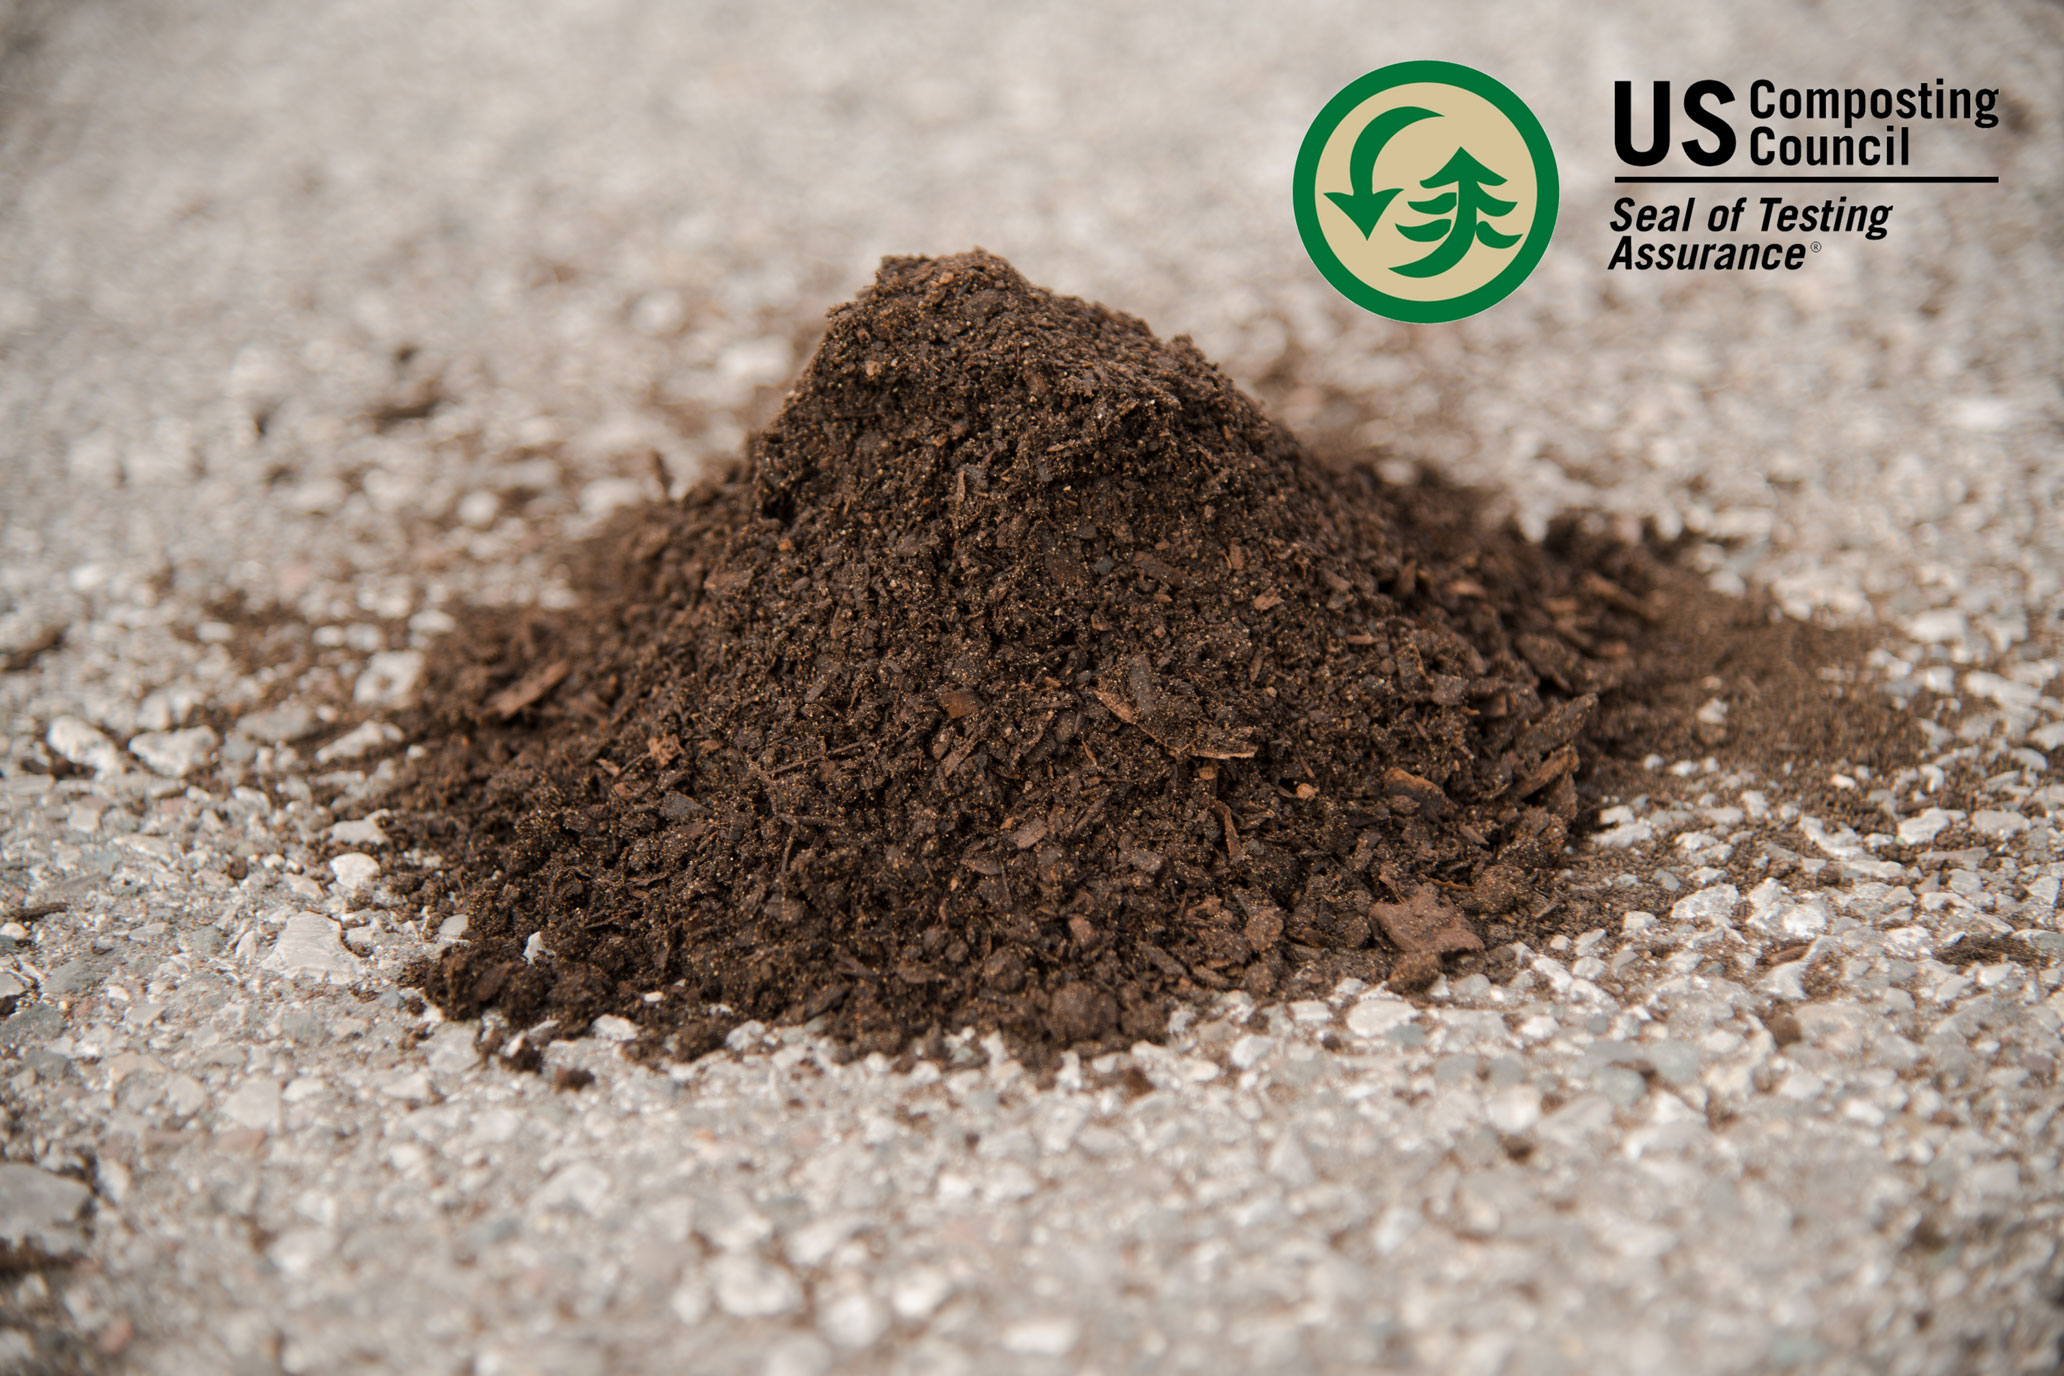 Murphy Compost - A light colored blend derived from the combining and aging of stable cleanings, manure, and a slight amount of green waste. When fully aged, this blend is processed through a trommel screen. This compost holds the Seal of Testing Assurance from the US Composting Council.